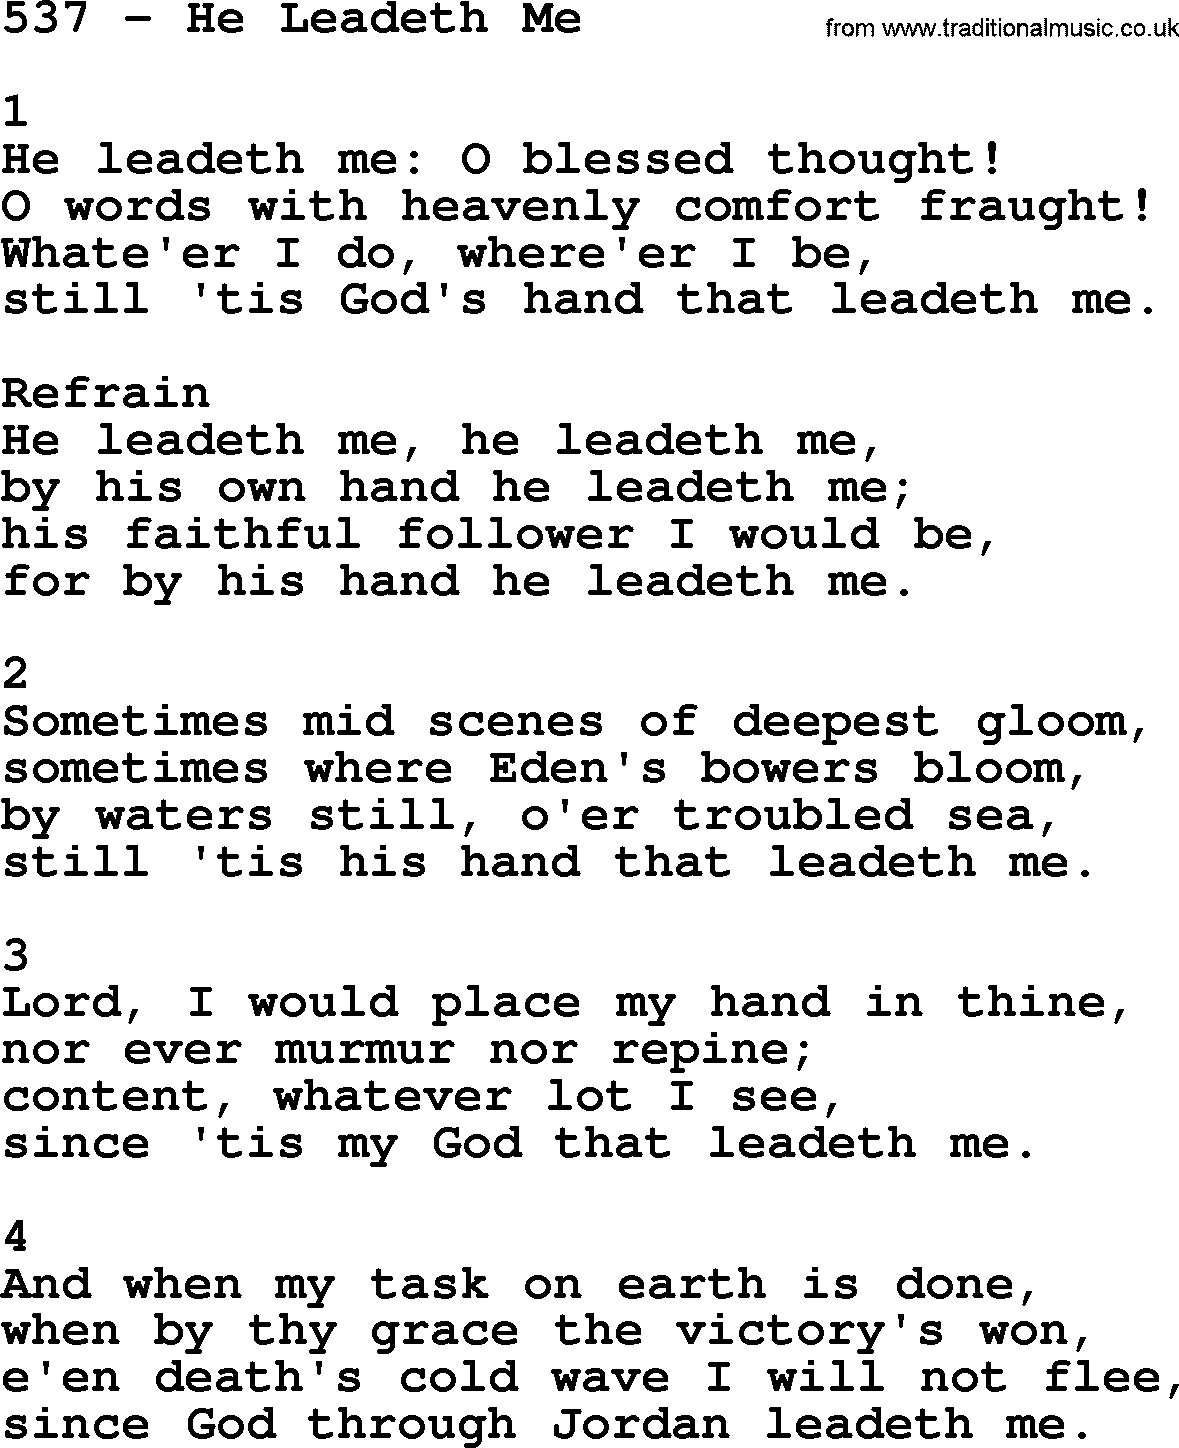 Adventist Hymnal, Song: 537-He Leadeth Me, with Lyrics, PPT, Midi